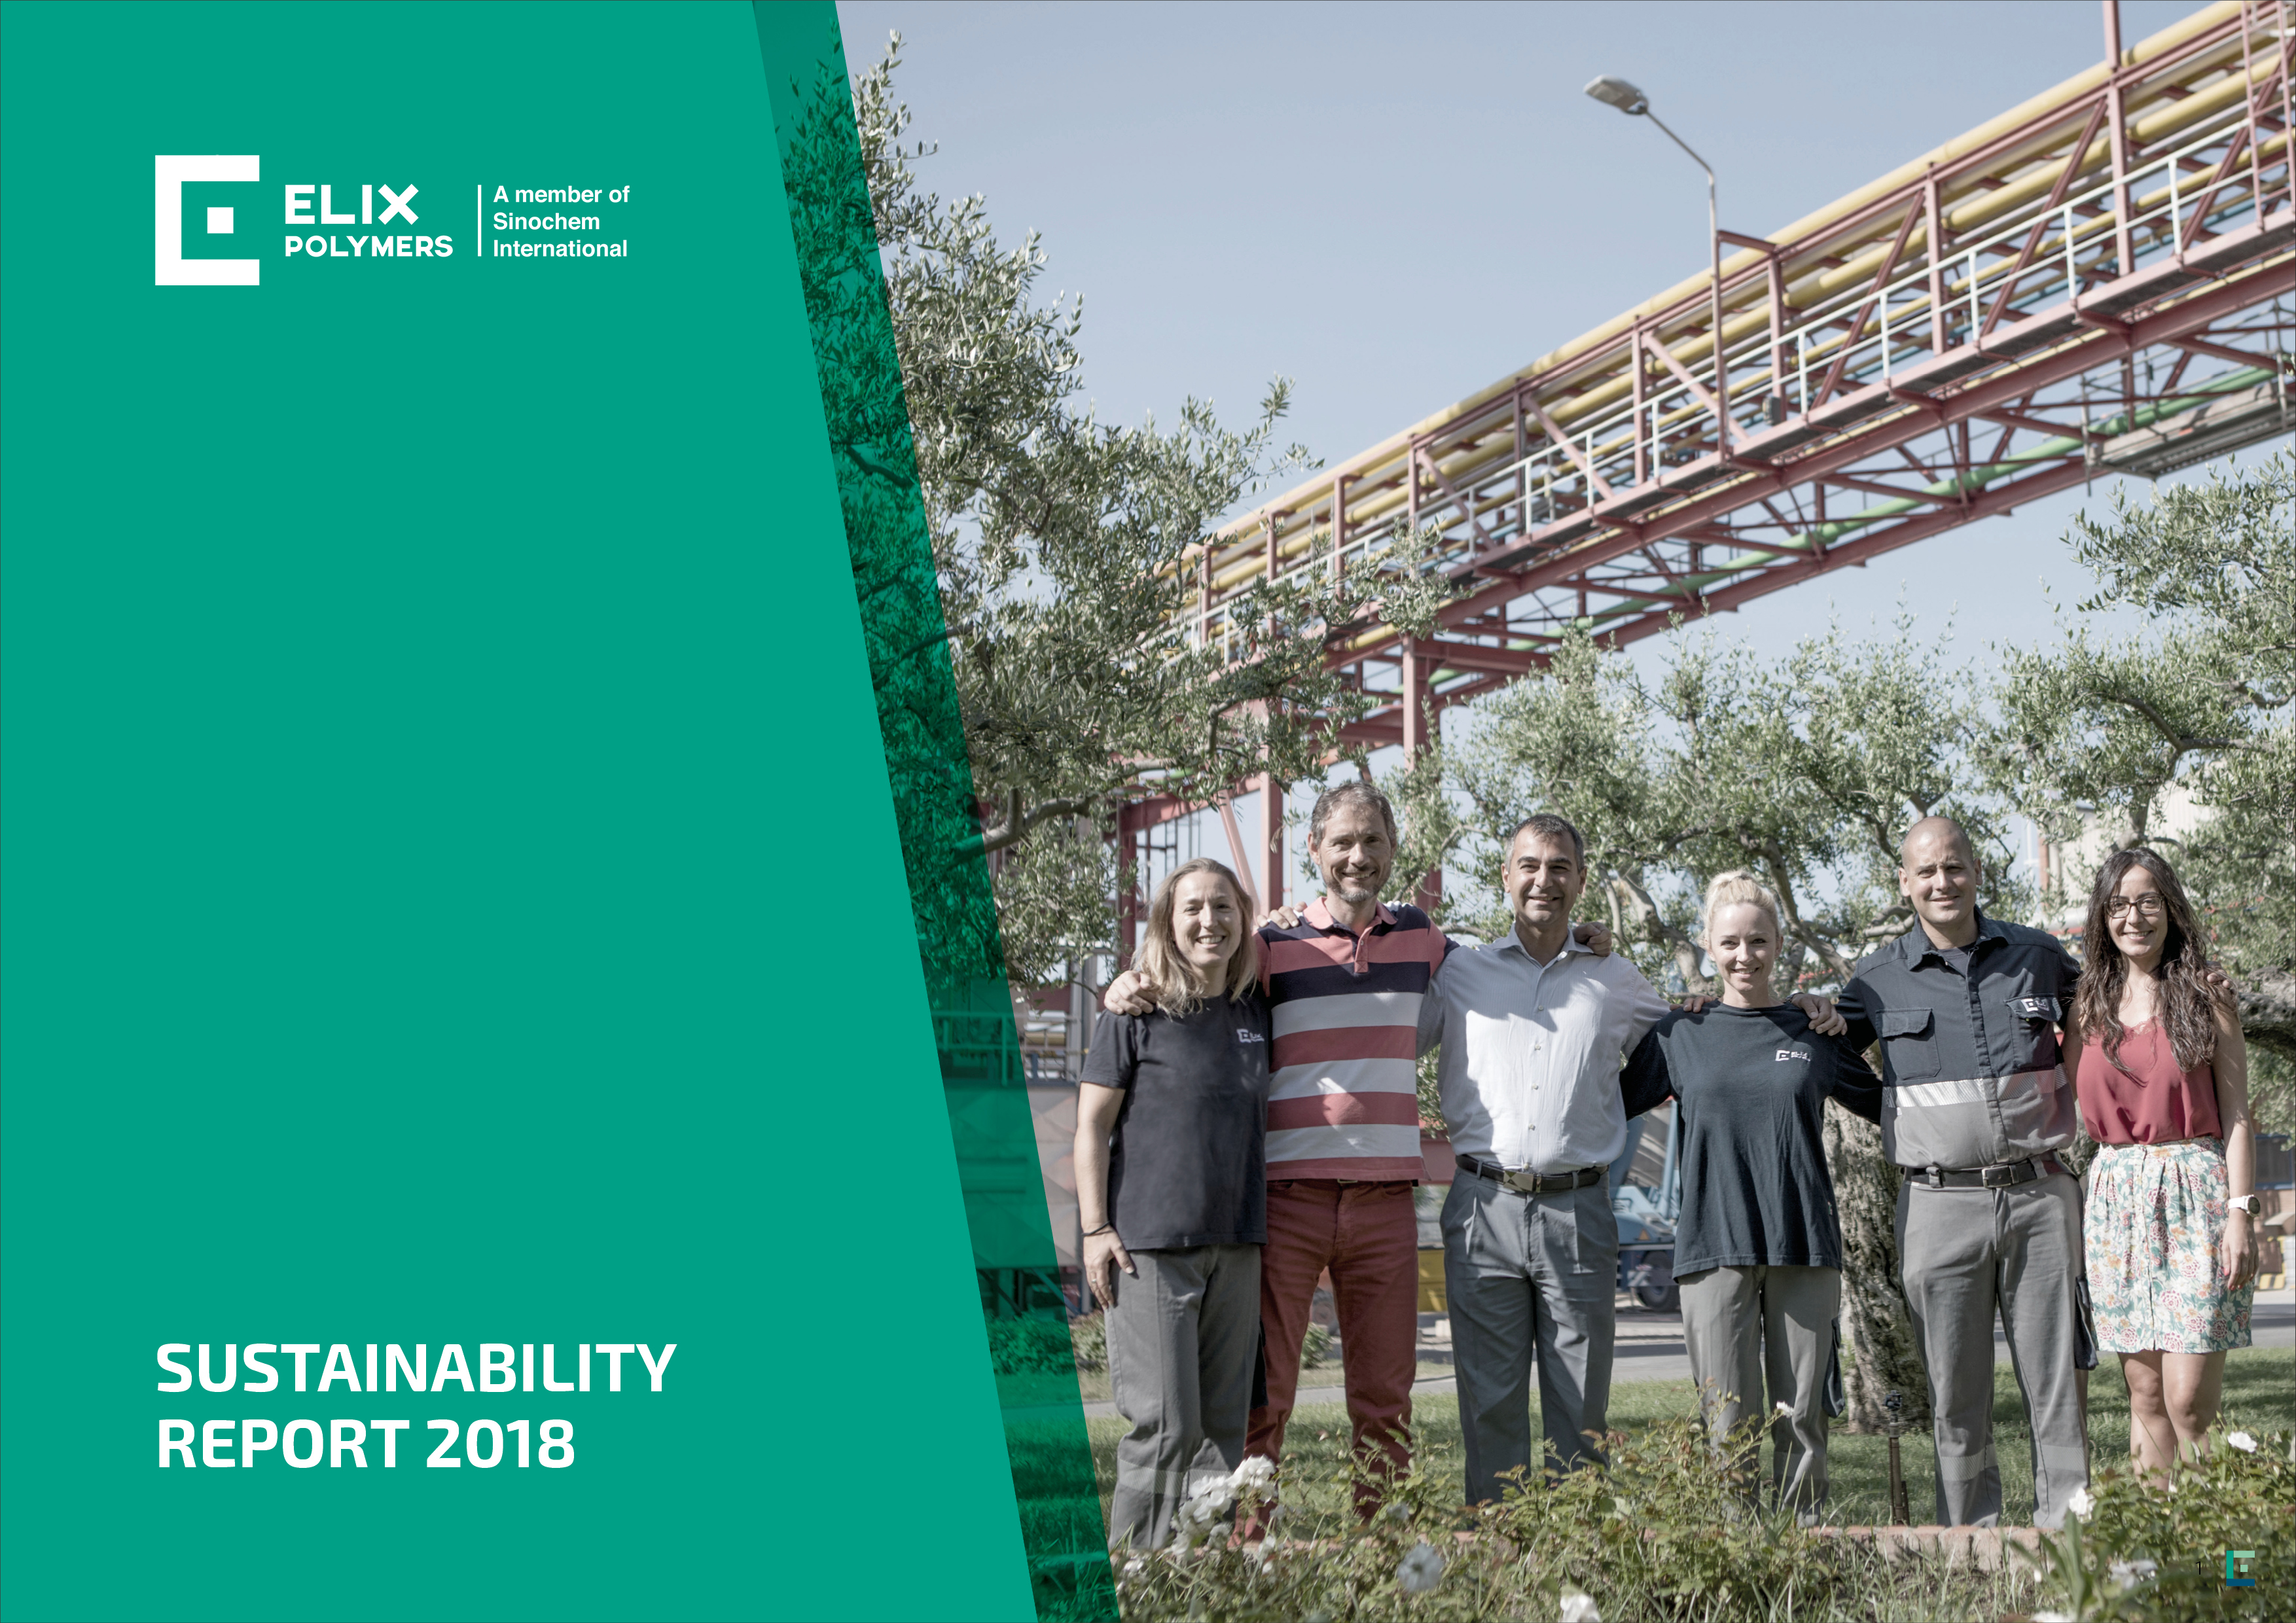 ELIX Polymers publishes its 2018 Sustainability Report